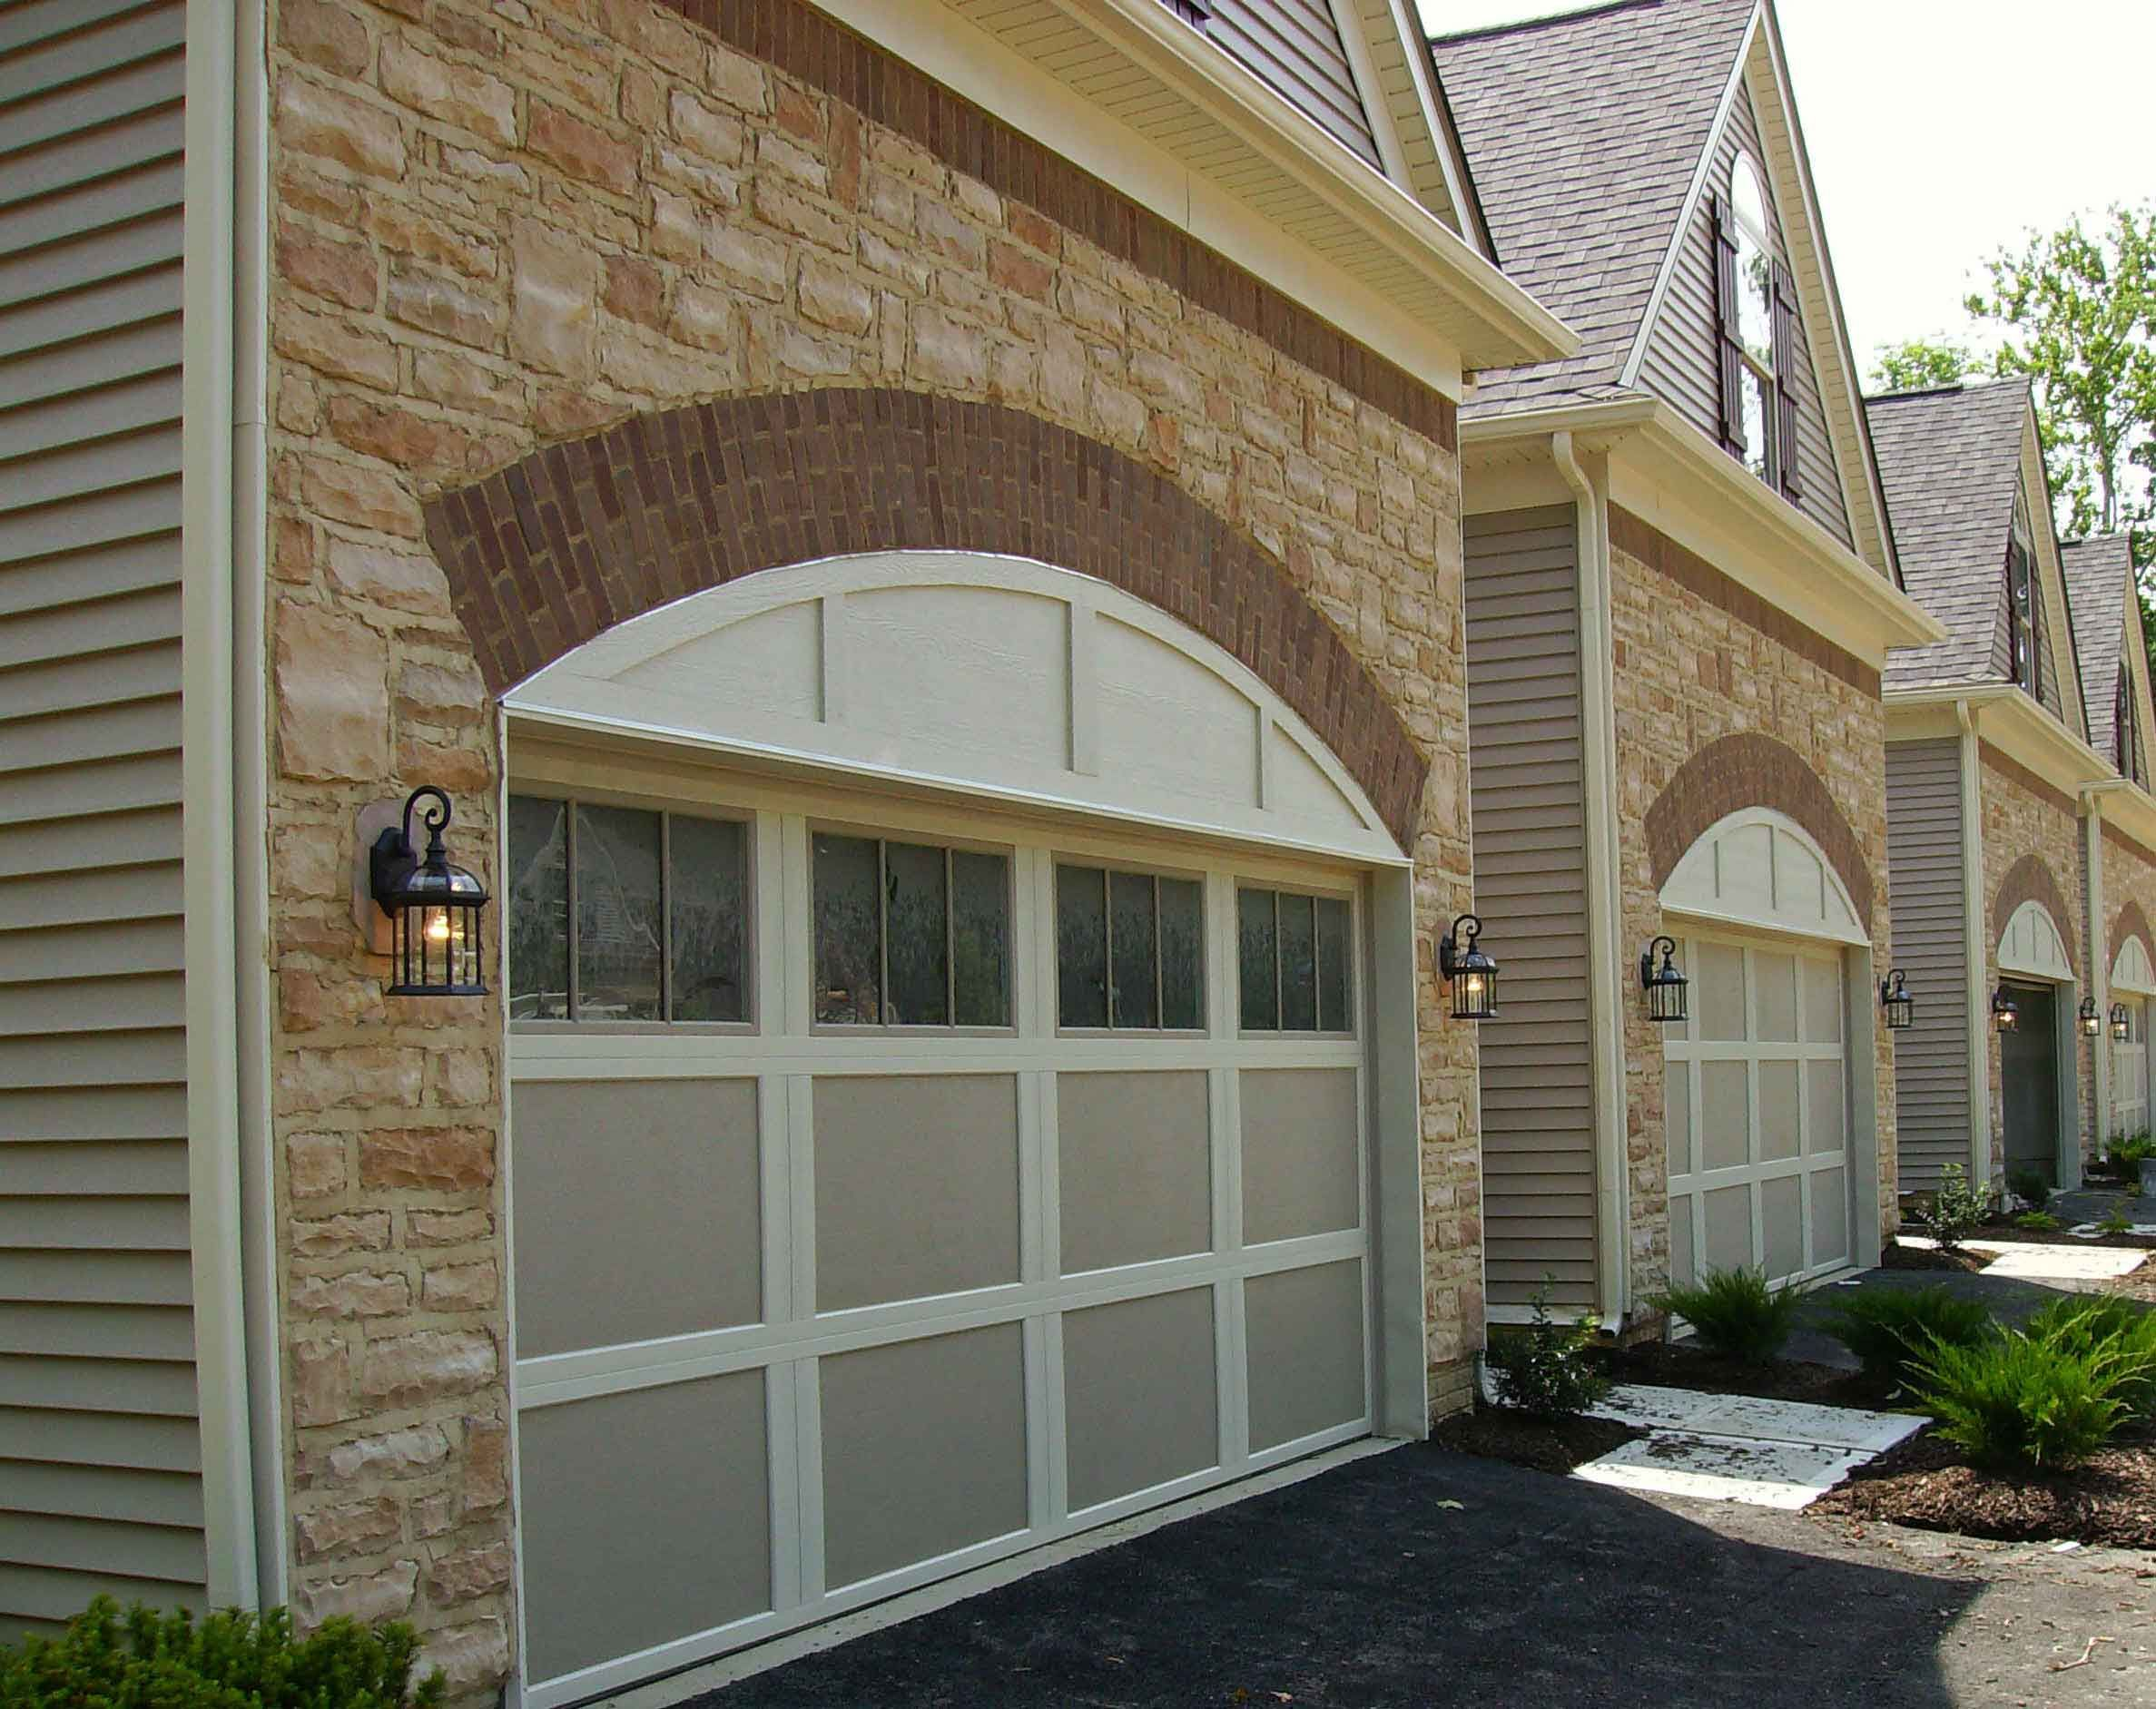 How to Choose a Garage Door Color & How to Choose a Garage Door Color | Steel Garage Doors | Pinterest ...